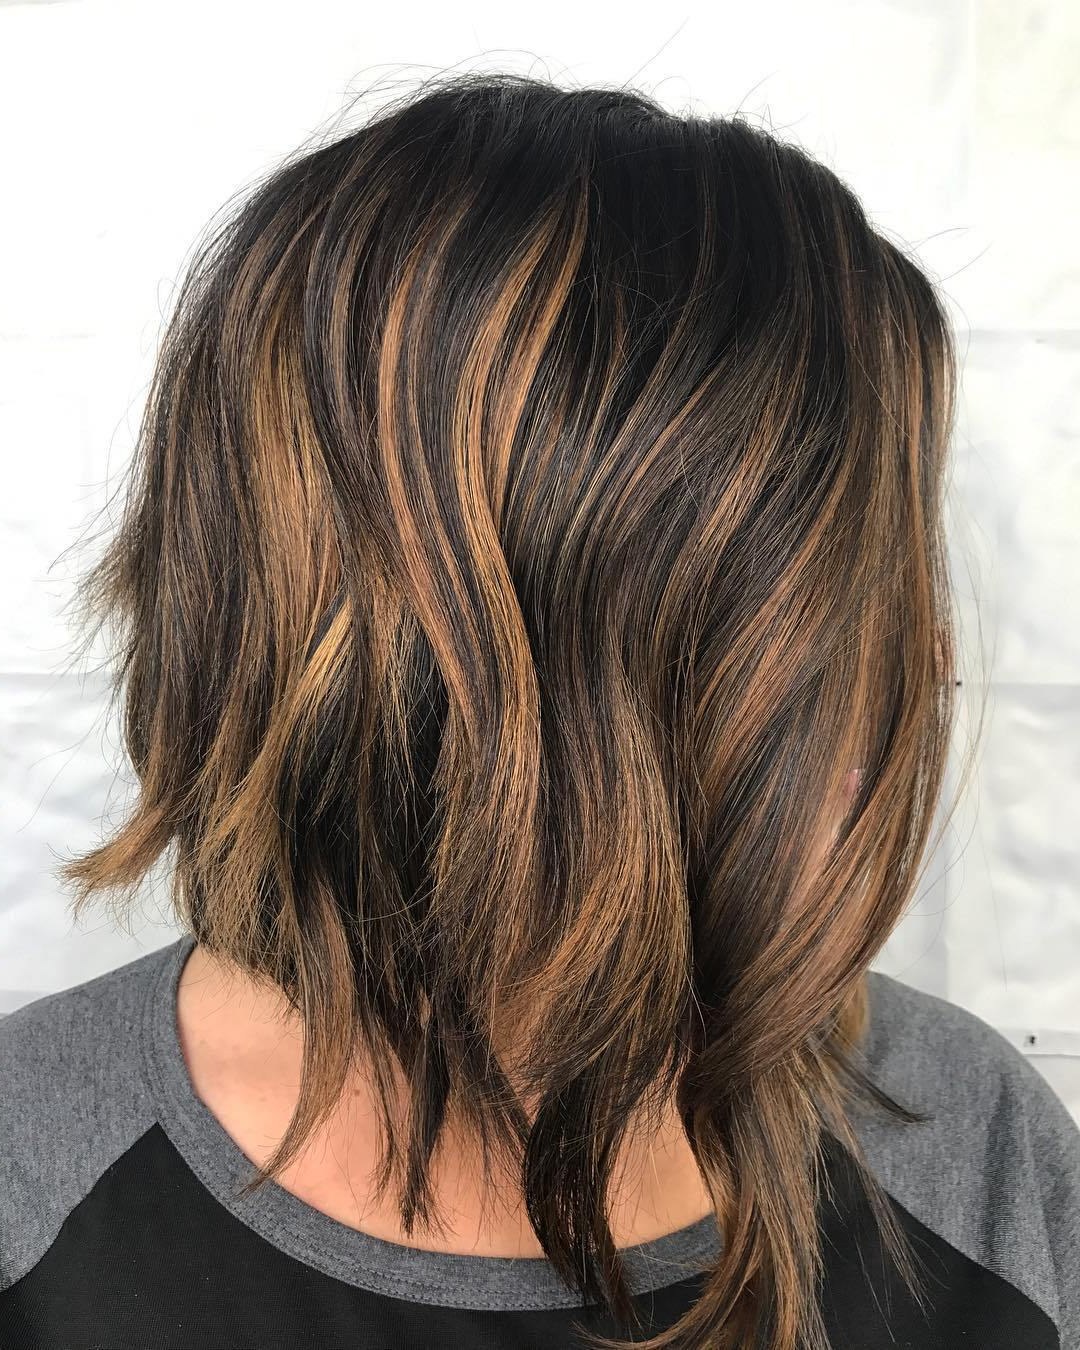 50 Hairstyles For Thick Wavy Hair You Will Adore – Hair Inside Favorite Razored Gray Bob Hairstyles With Bangs (View 12 of 20)